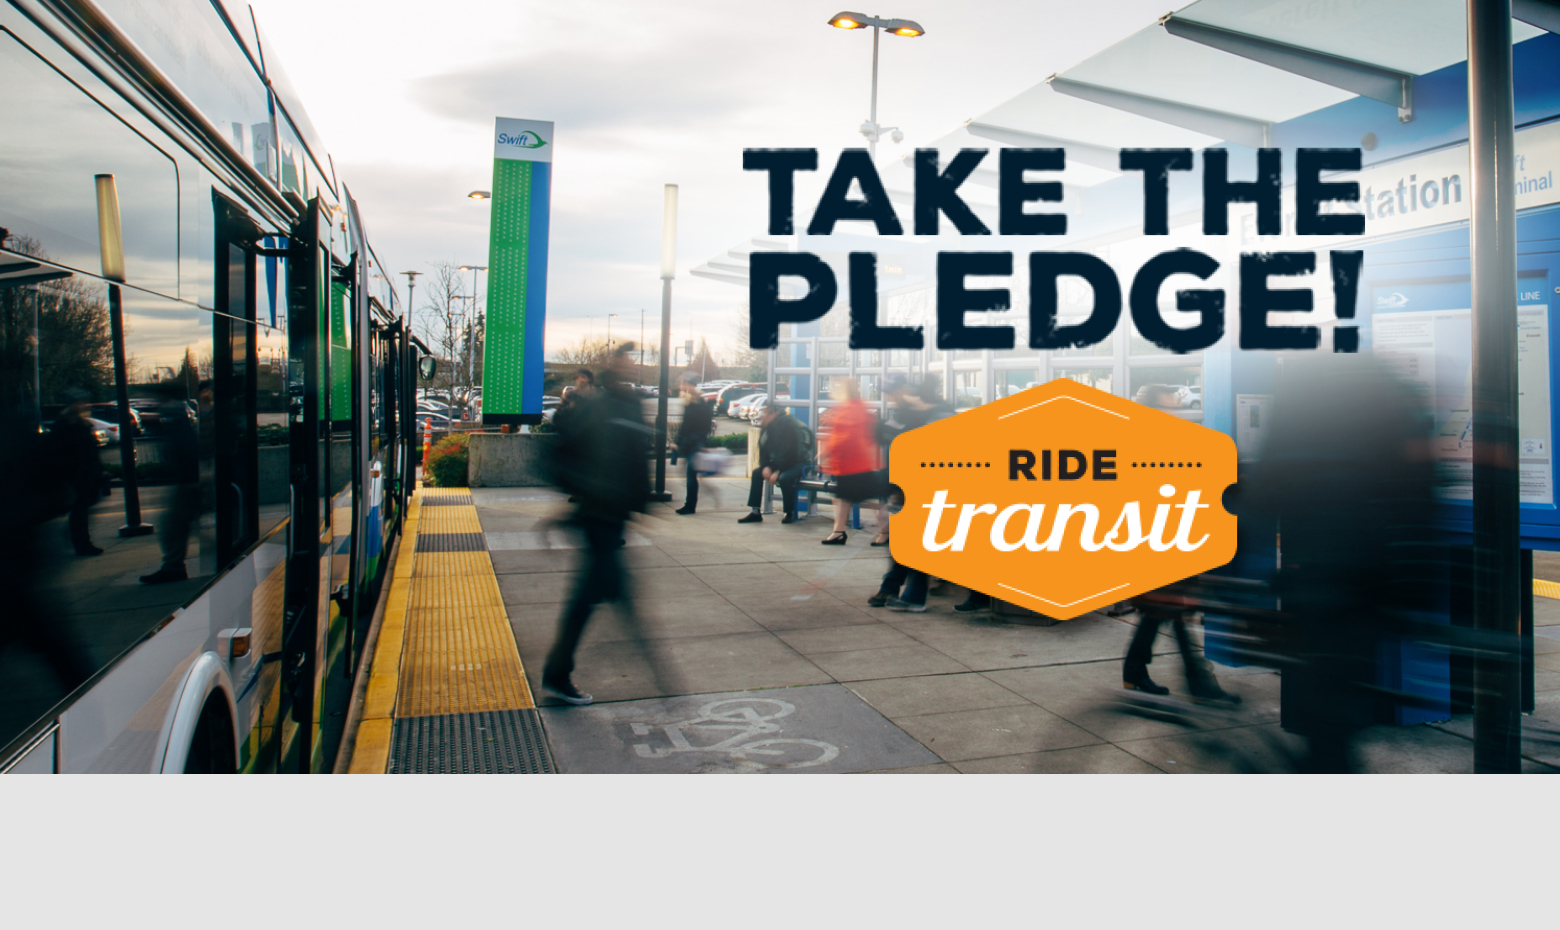 Take the Ride Transit Pledge